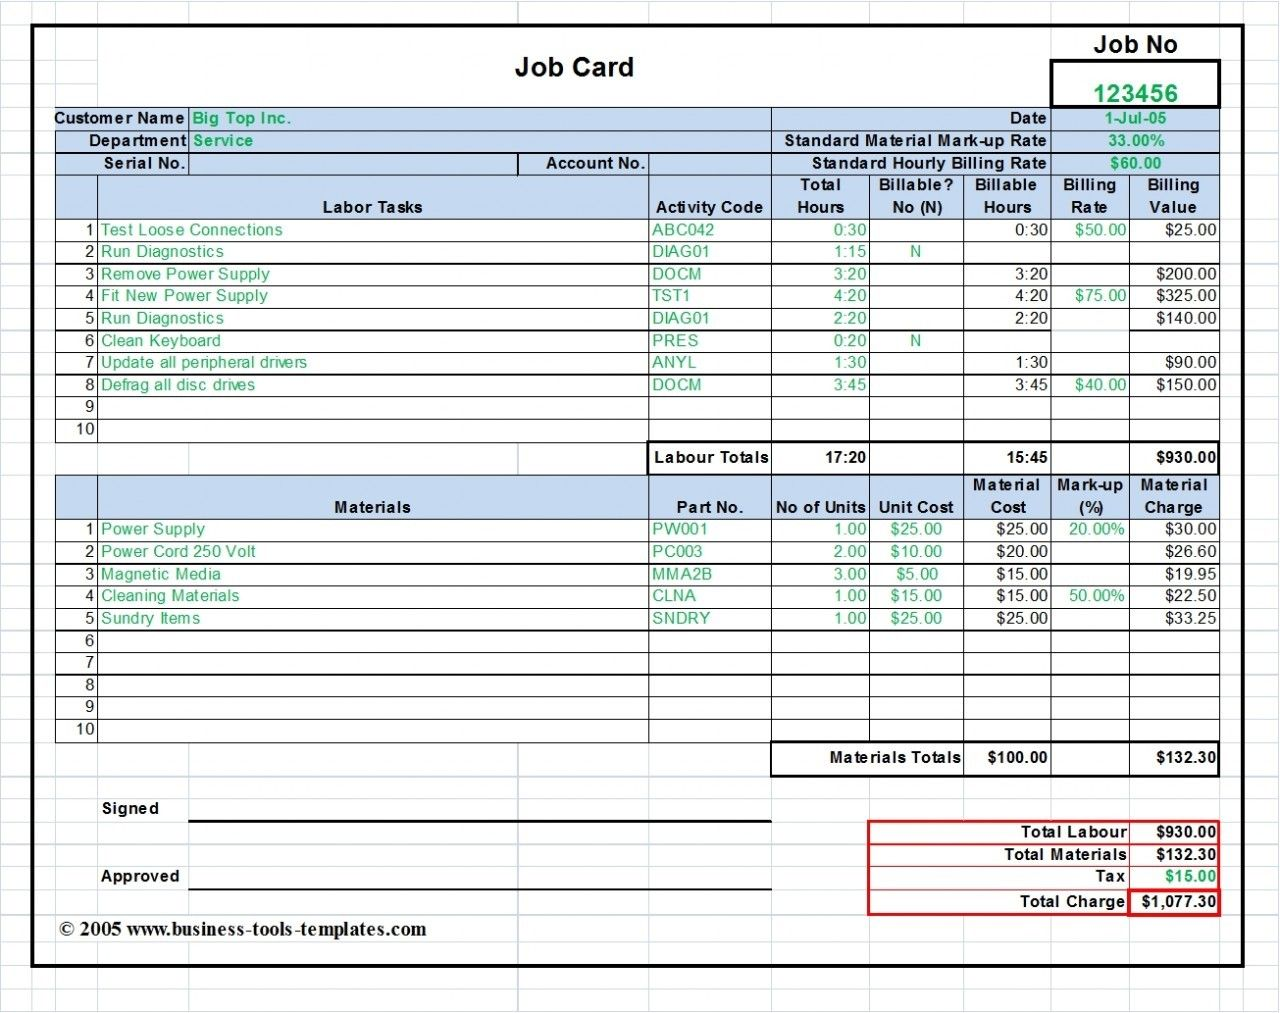 Labor & Material Cost Estimator and Job Card Template (MS-Excel ...